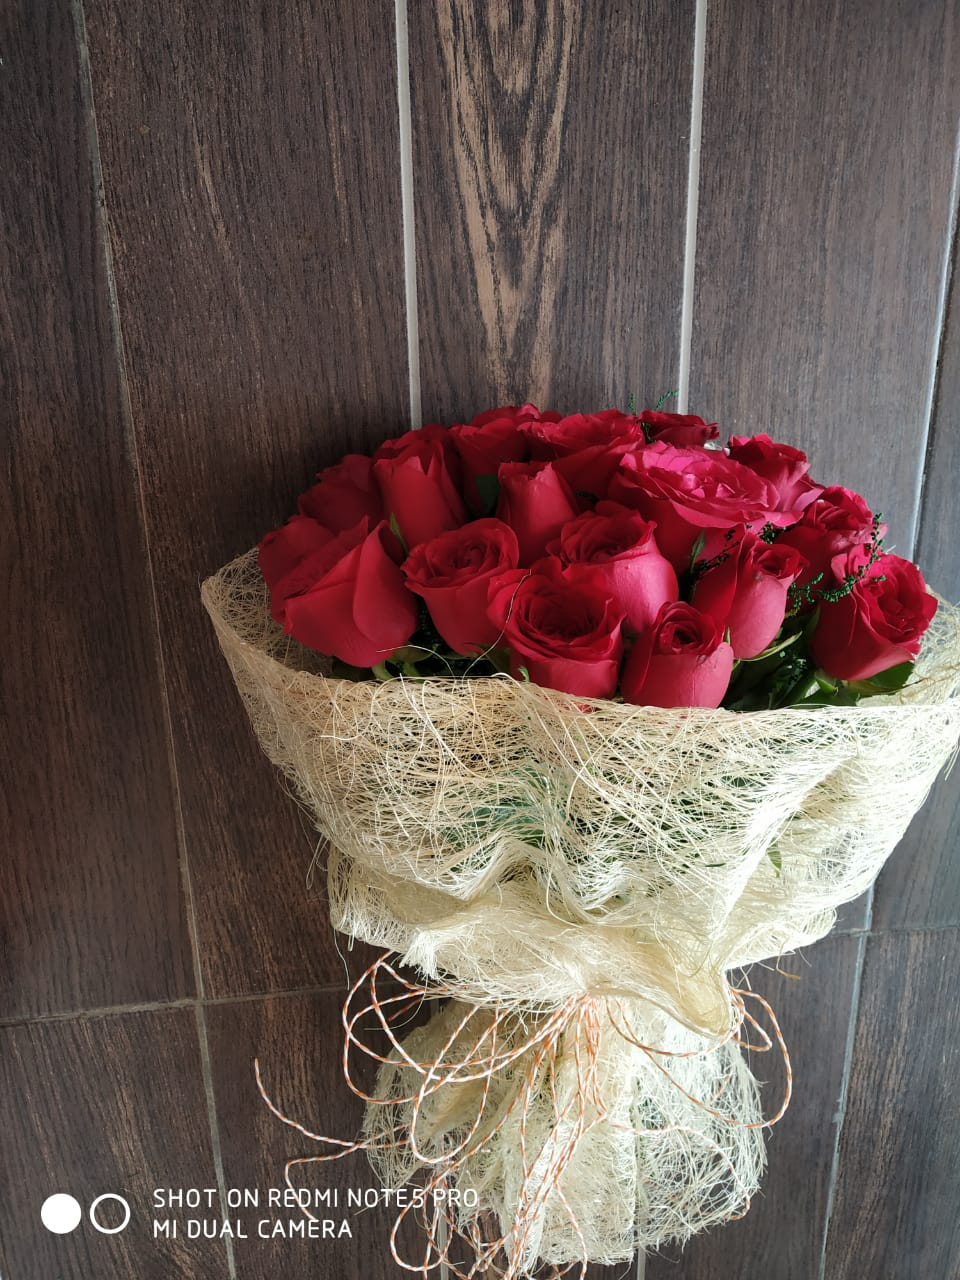 send flower Vikas puri DelhiRed Roses in Jute